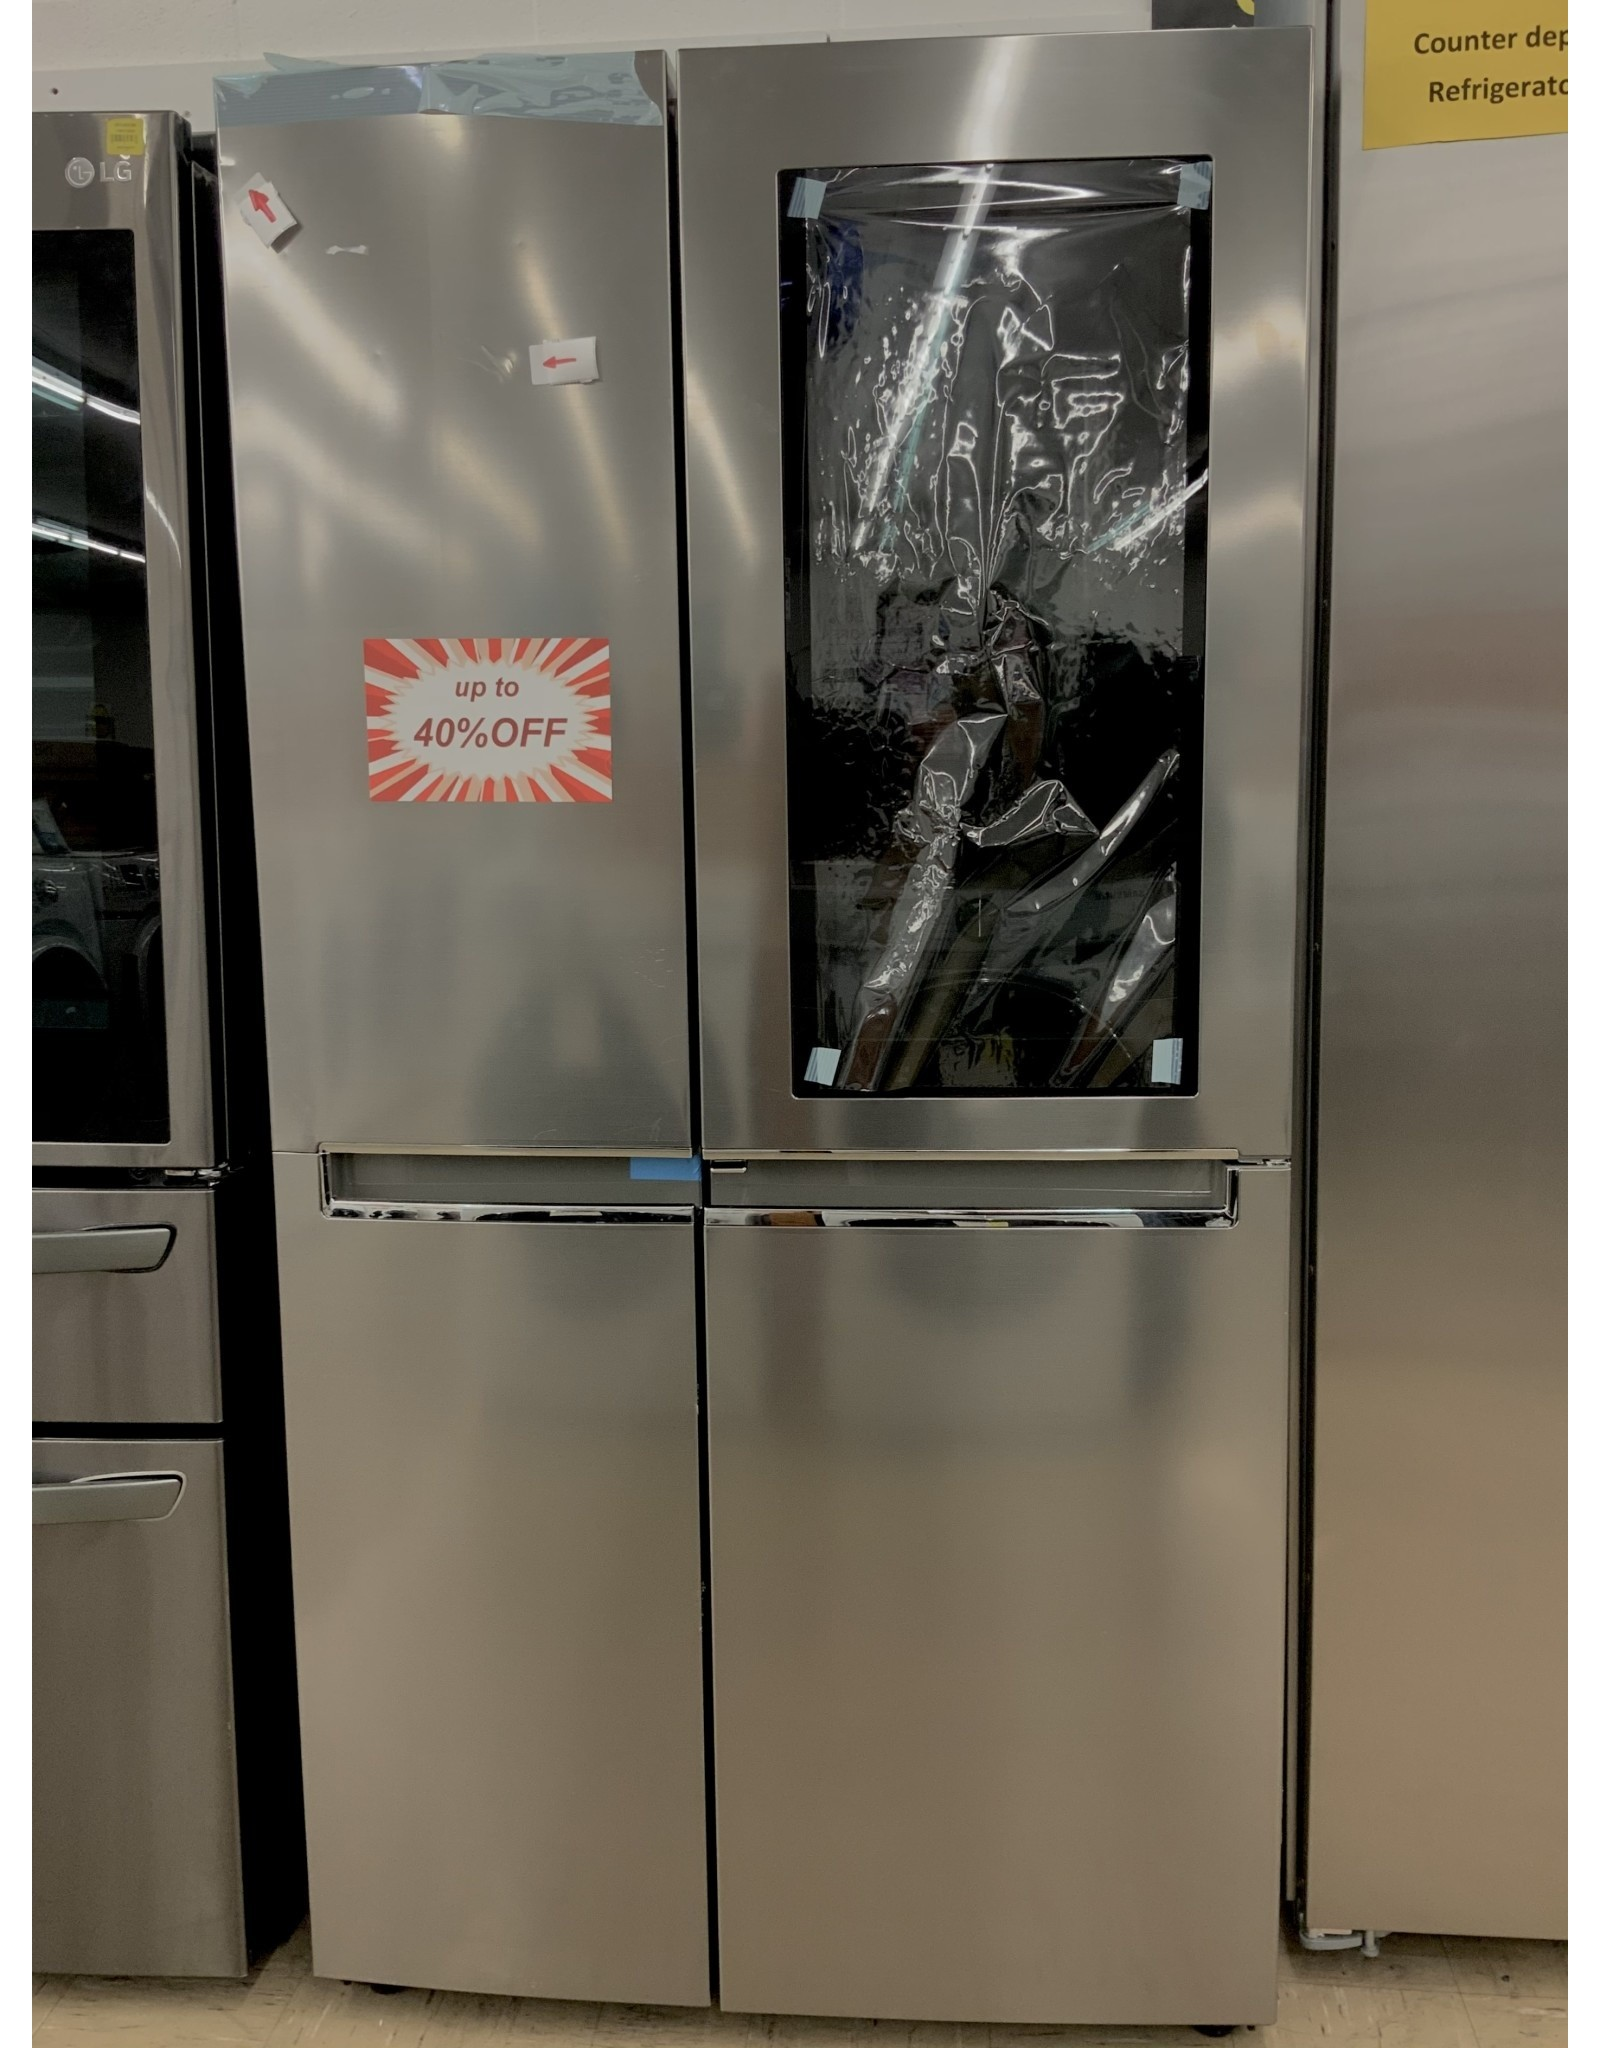 LG Electronics 26.8 cu. ft. Side by Side Refrigerator with InstaView Door-in-Door, Non-Dispenser with Pocket Handles in Platinum Silver